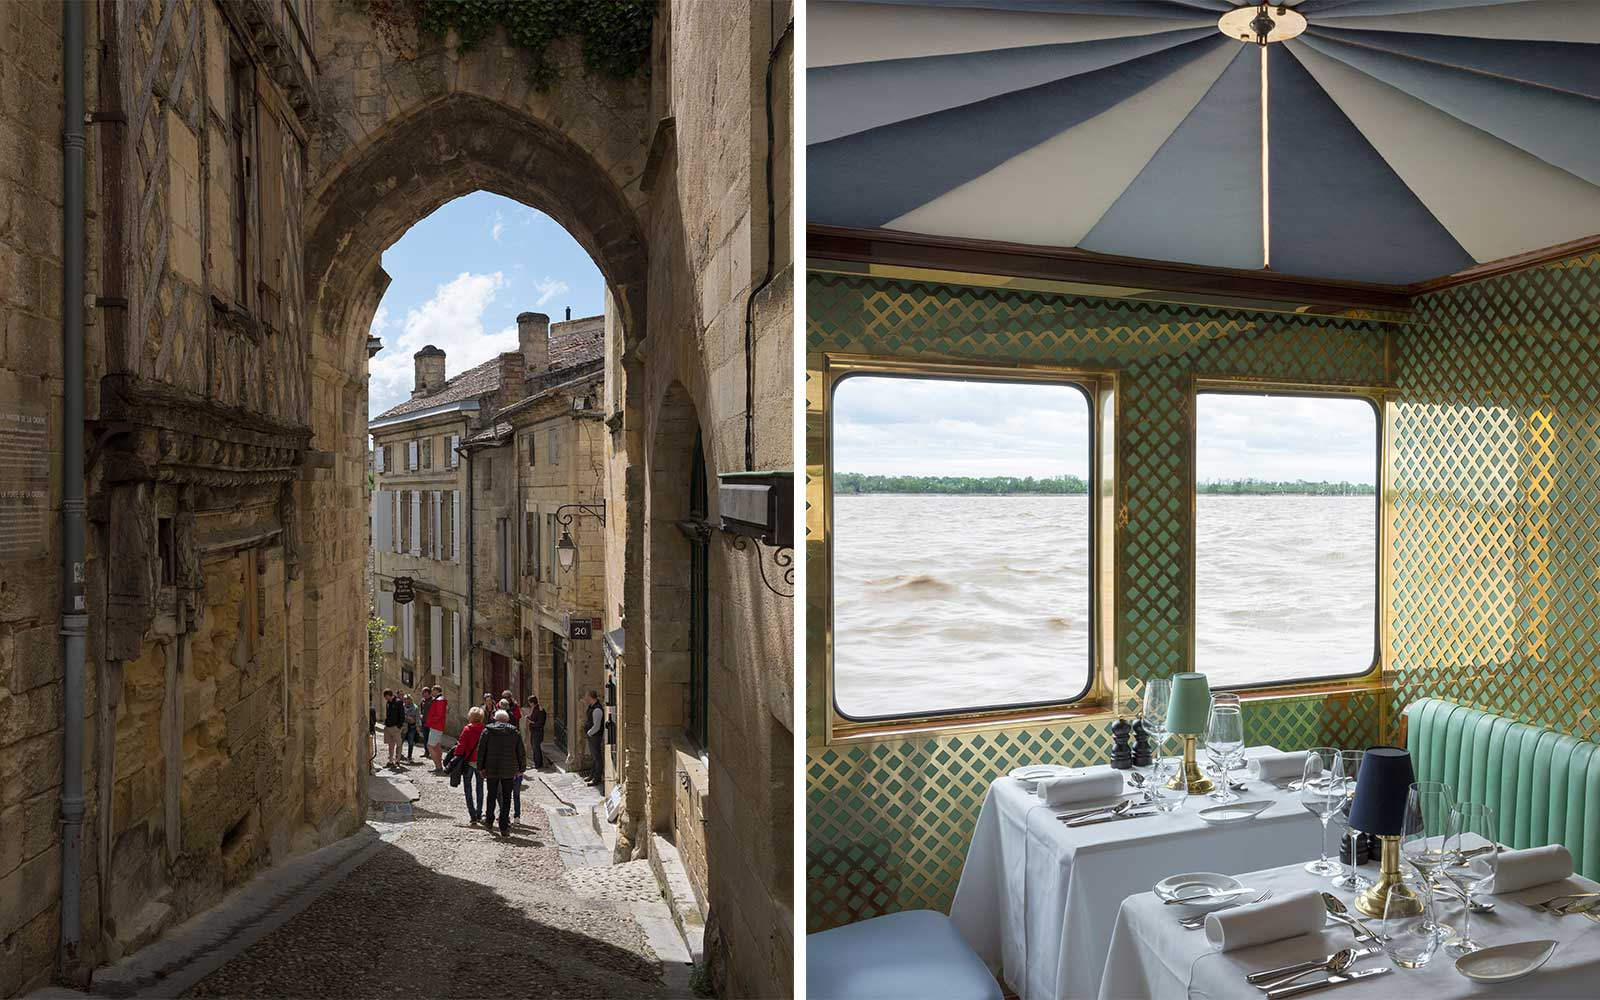 This Uniworld River Cruise Through Bordeaux Is All About Wine, Cheese, Oysters, and Lavish Châteaux